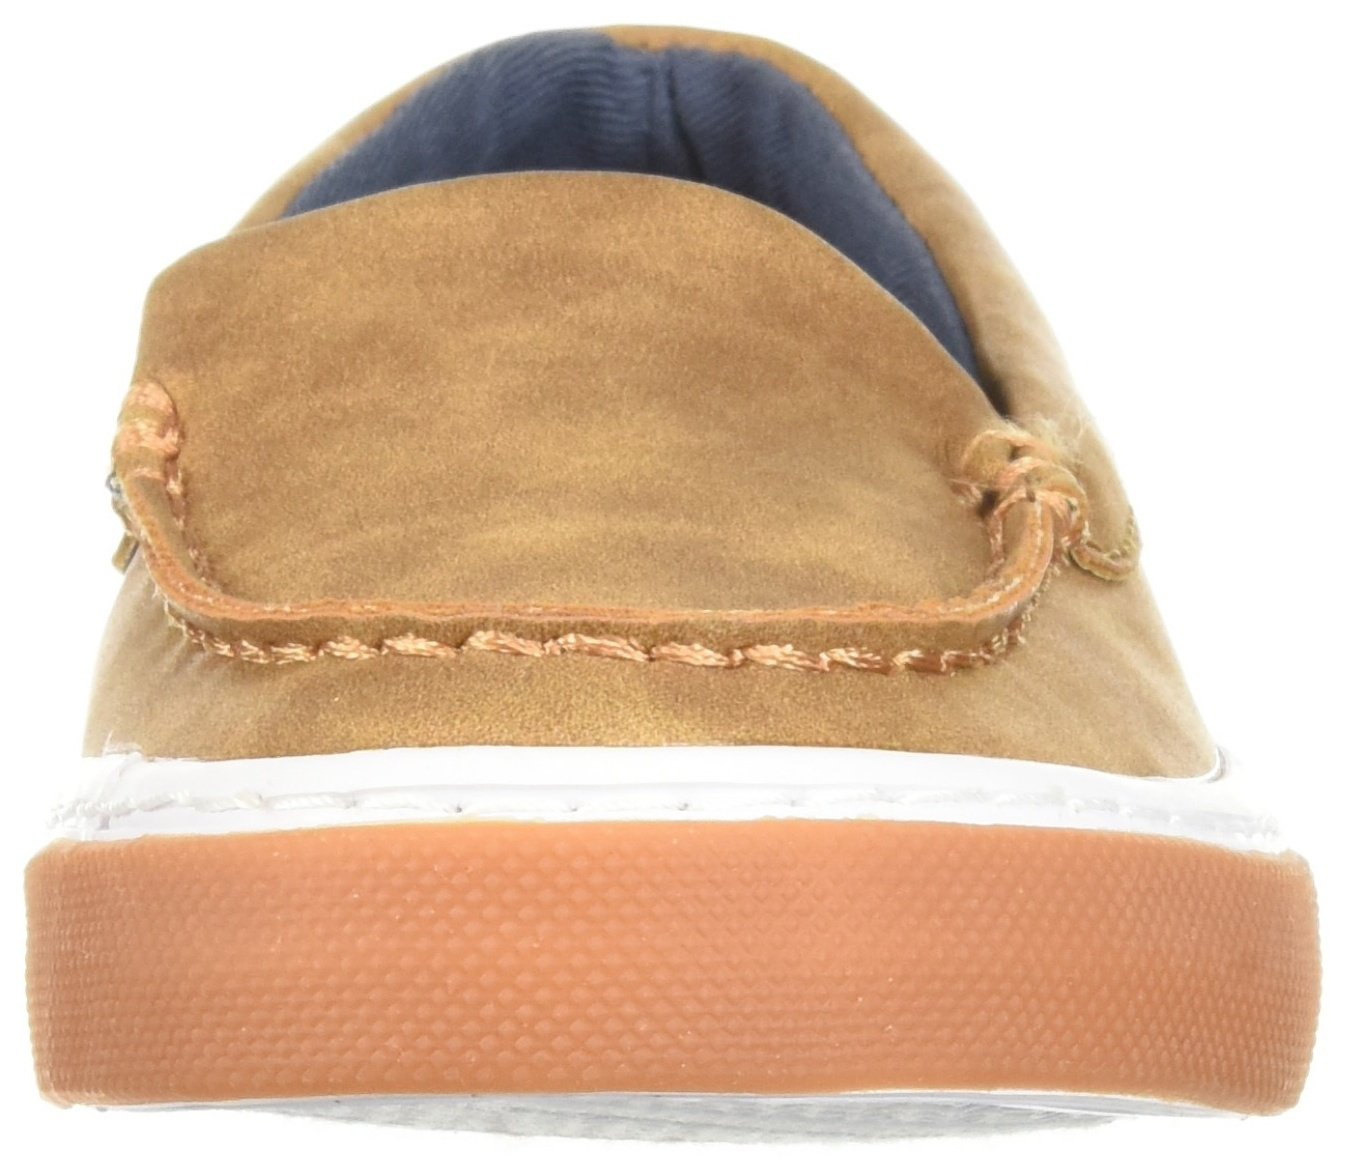 The Children's Place Kids' Sneaker,TAN-BB Indie,12 M US Little Kid by The Children's Place (Image #4)